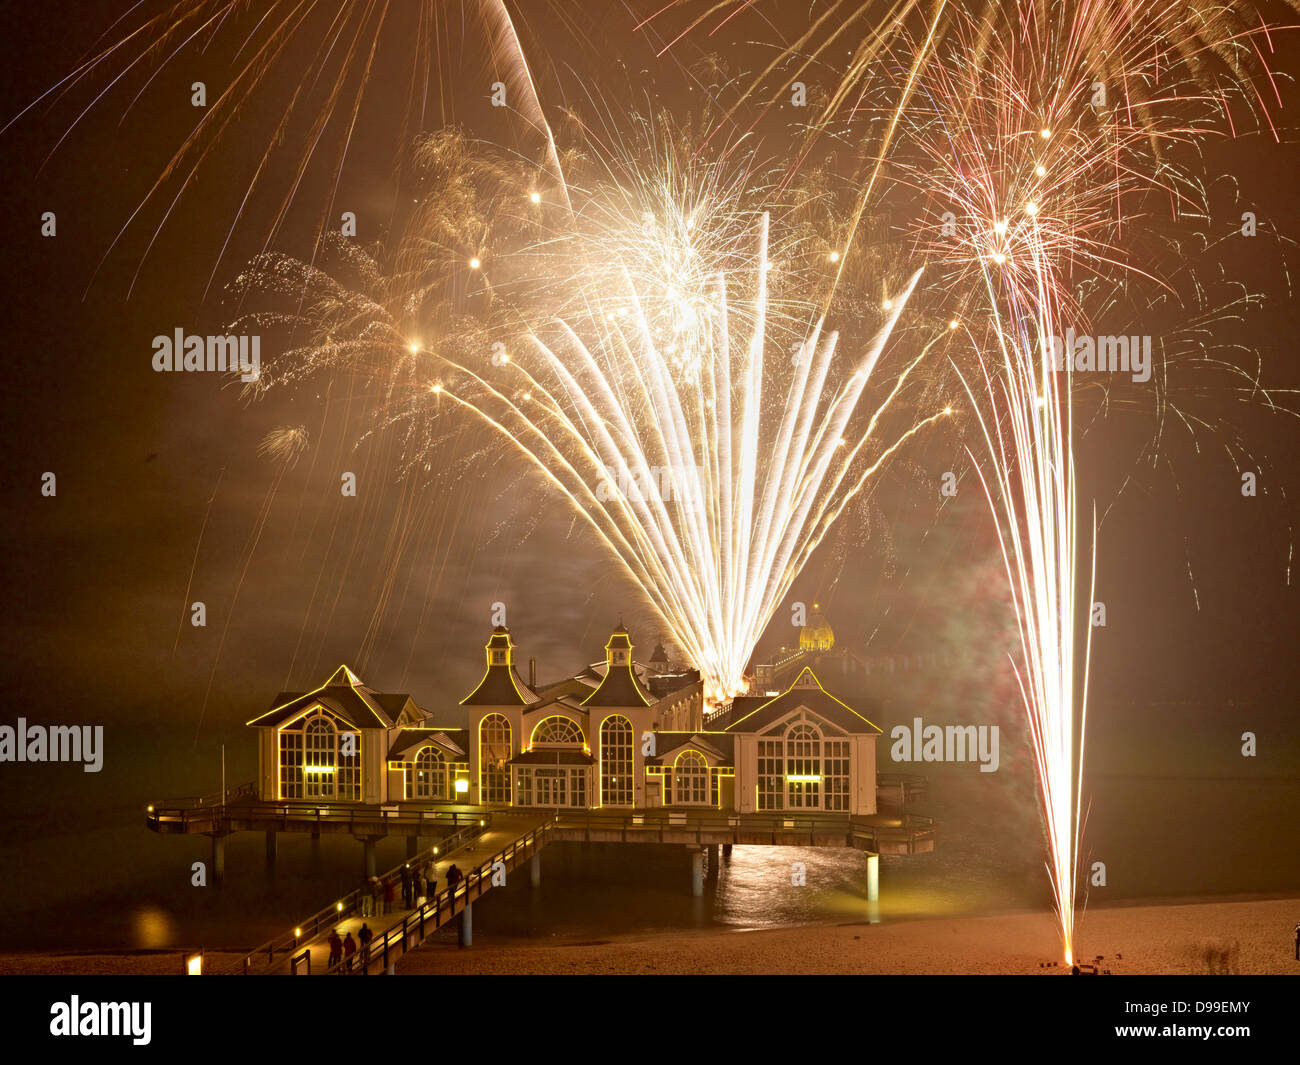 Fireworks On Water Stock Photos & Fireworks On Water Stock Images ...